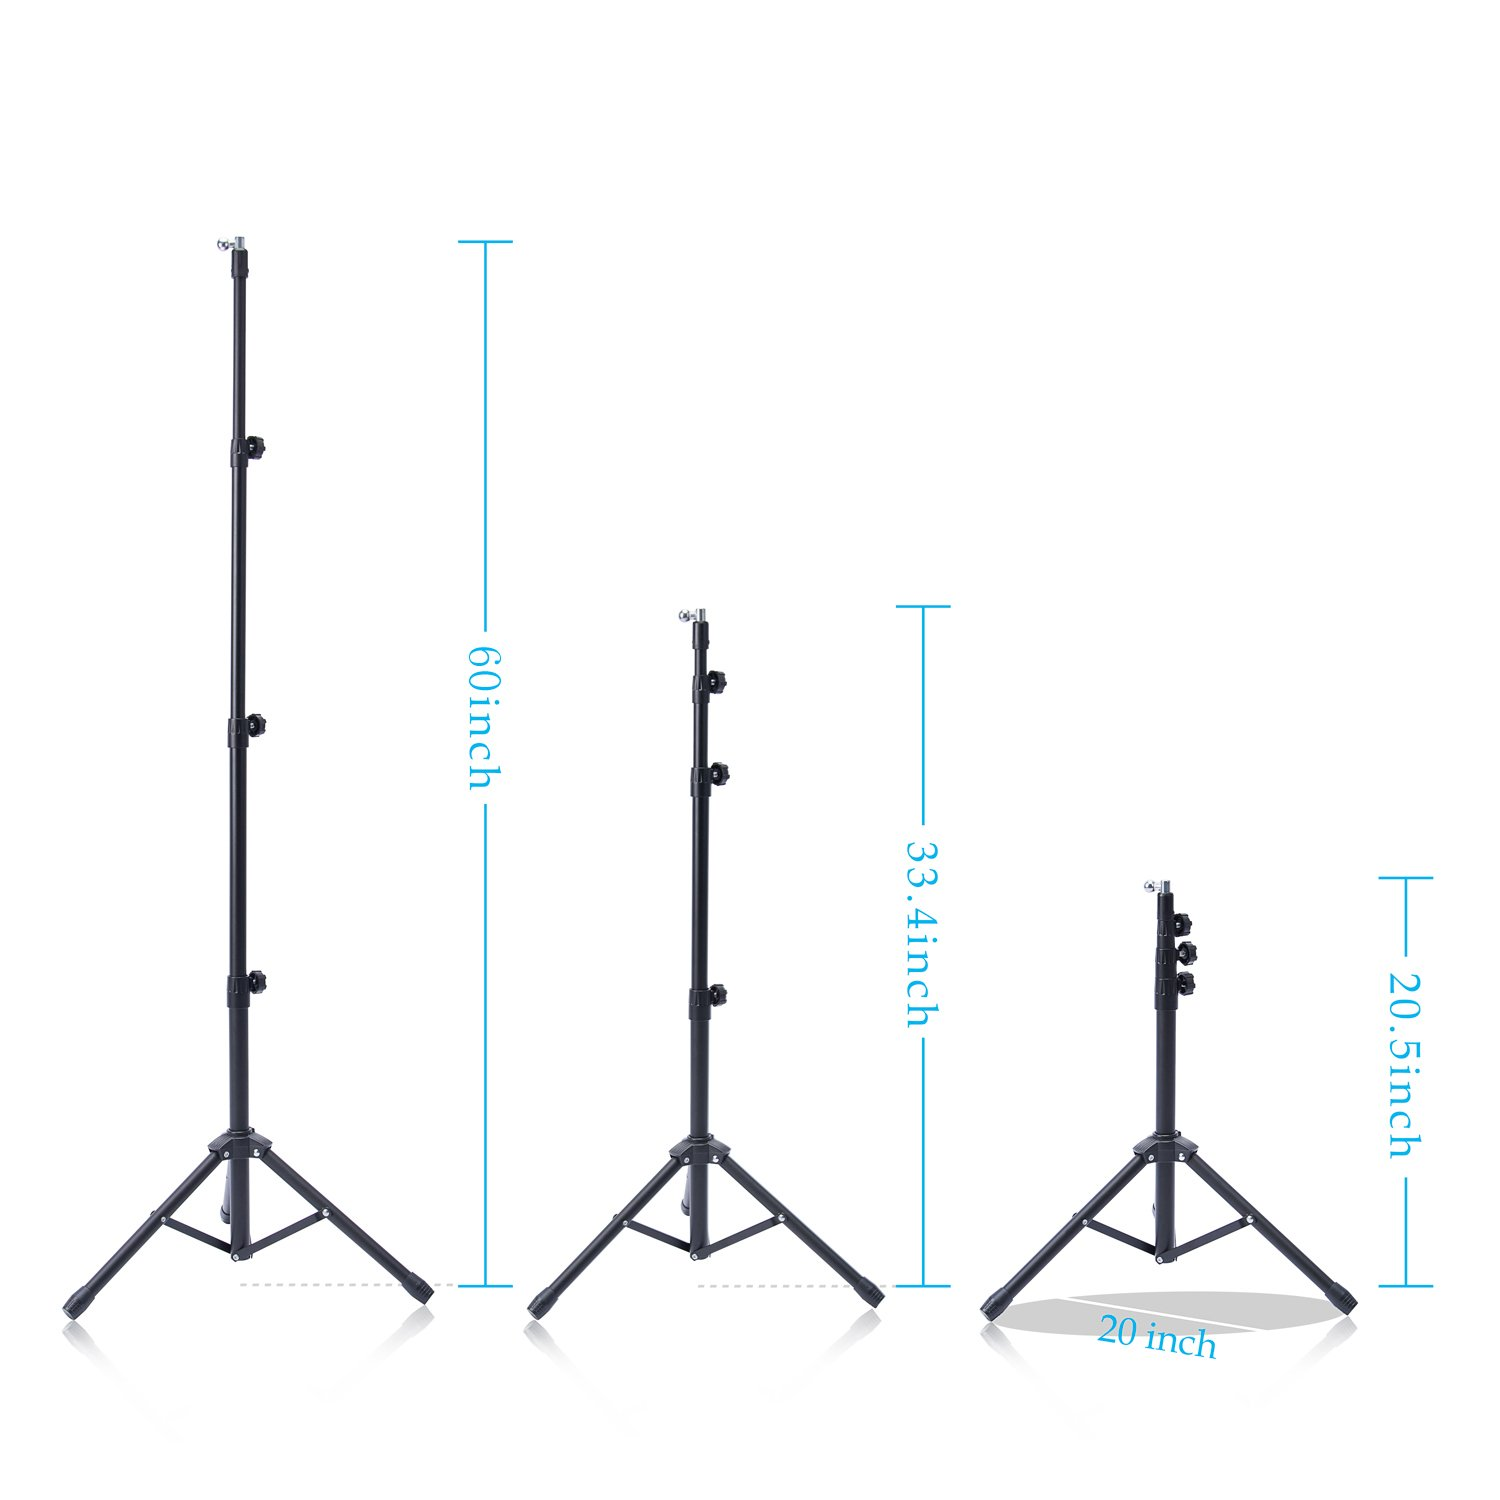 T-Sign Reinforced IPad Tripod Stand Mount - Foldable Floor Tablet Holder, Height Adjustable 360 Rotating Stand for iPad Mini/Air and More 7'' to 12'' Tablets, Carrying Case and Phone Holder As Gifts by T-SIGN (Image #4)